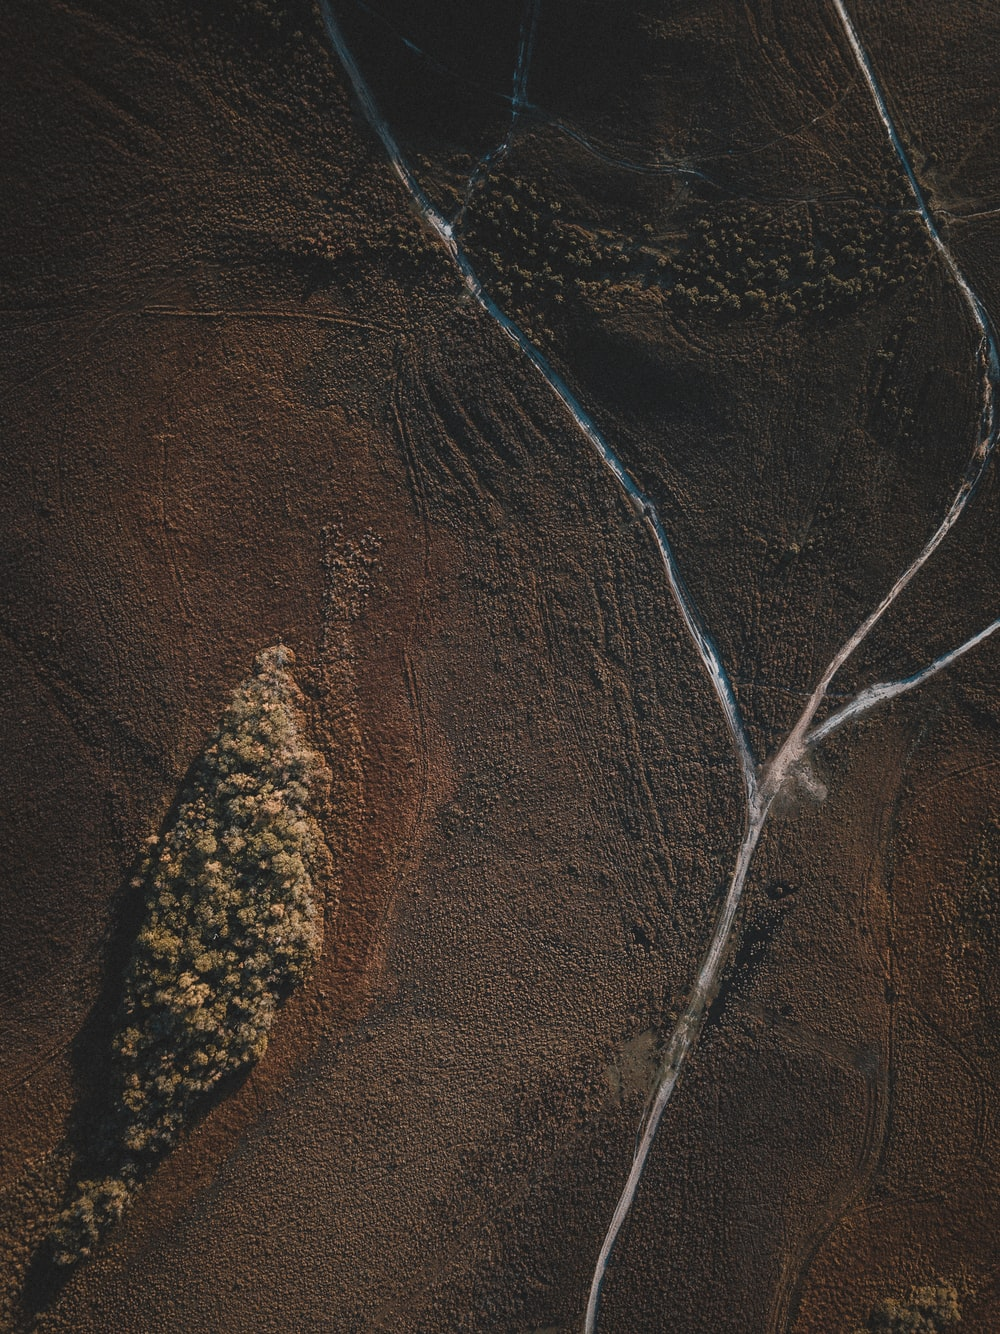 aerial photography of brown field during daytime